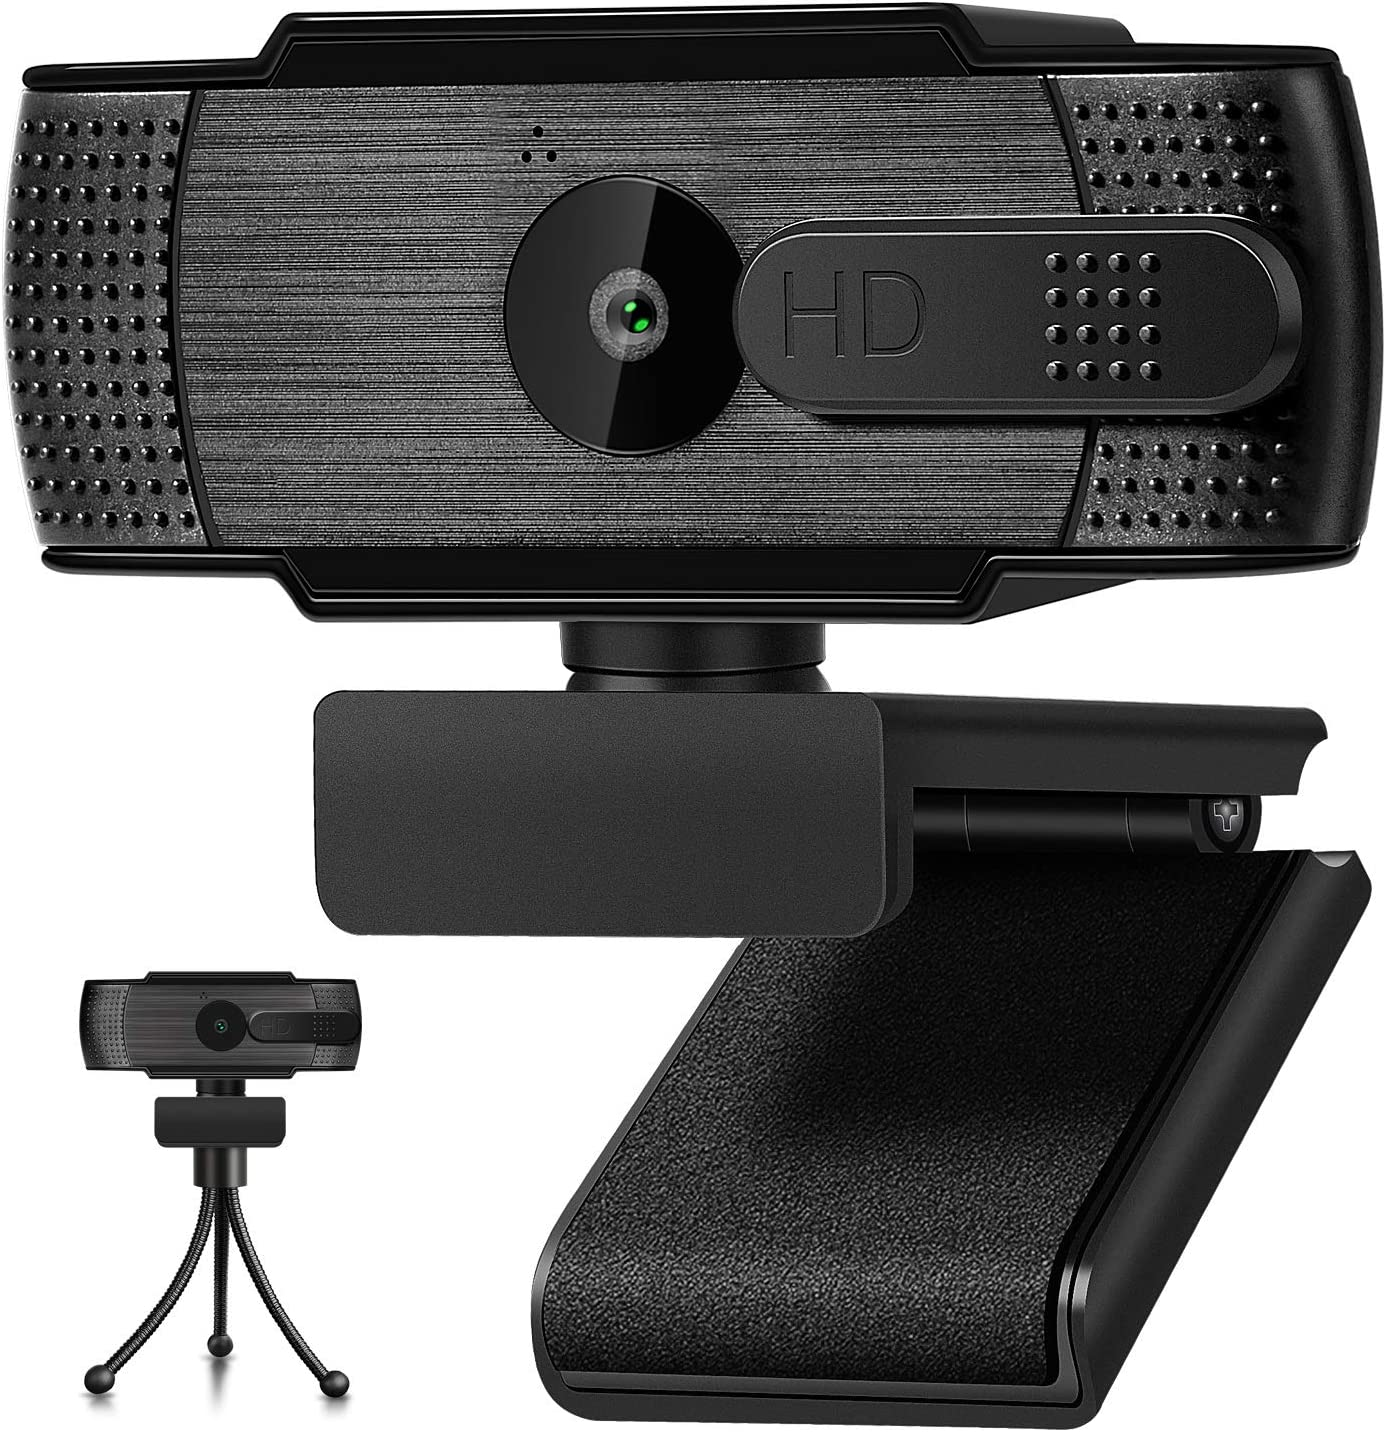 Webcam with Microphone 1080P HD Webcam USB 110-Degree Wide Angle Camera Video Streaming Webcam for Computer Desktop and Laptop with Privacy Cover and Tripod for Conferencing and Gaming